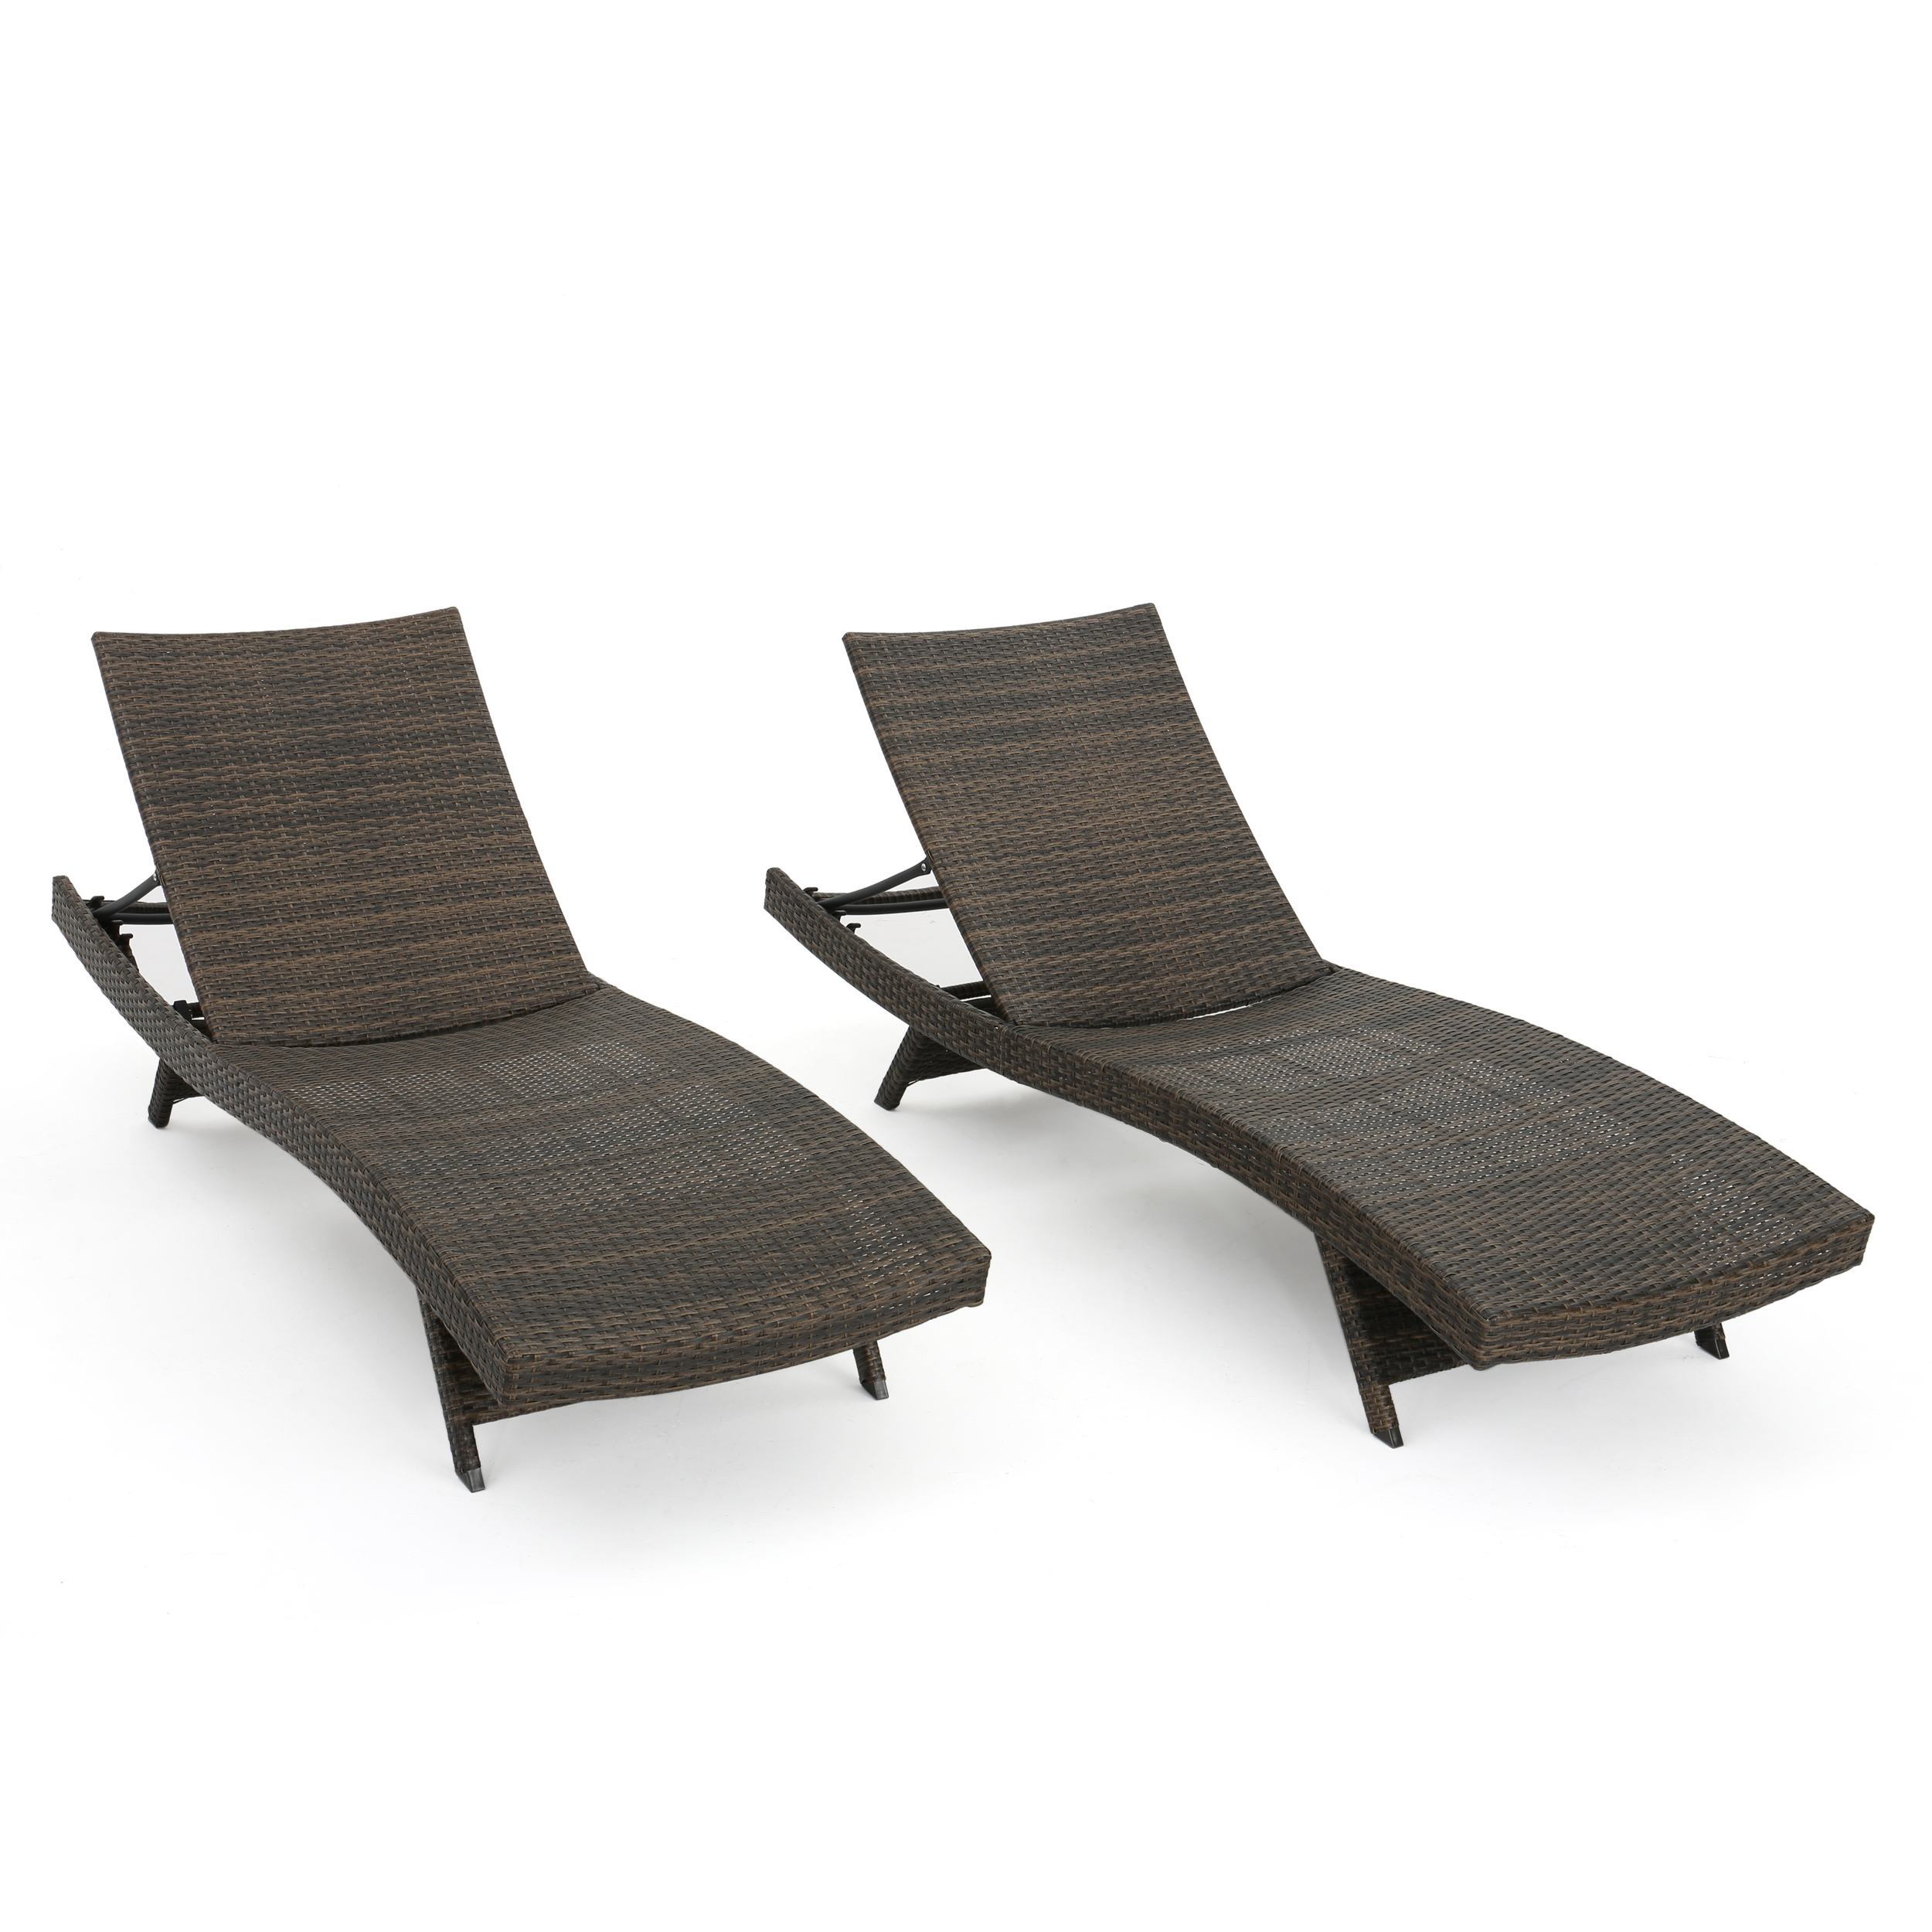 Preferred Outdoor Aluminum Chaise Lounges Intended For Thelma Outdoor Aluminum Wicker Chaise Lounge, Set Of 2, Mixed Mocha (Gallery 8 of 25)